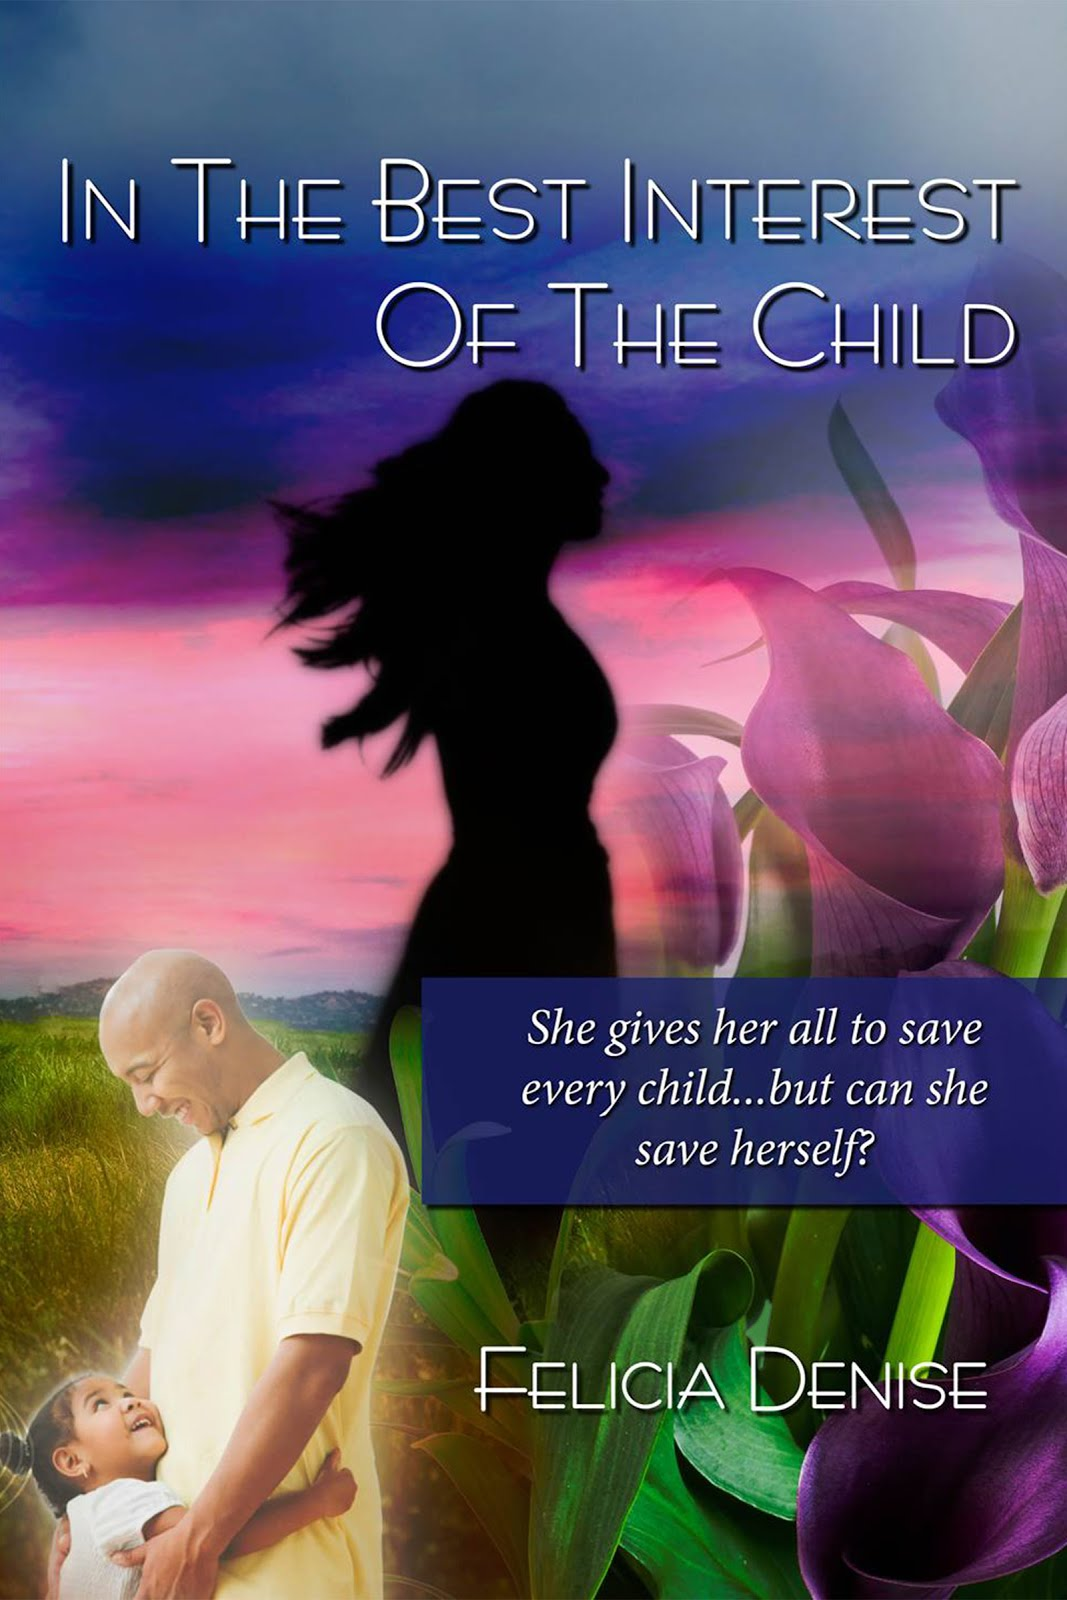 In The Best Interest of the Child by Felicia Denise